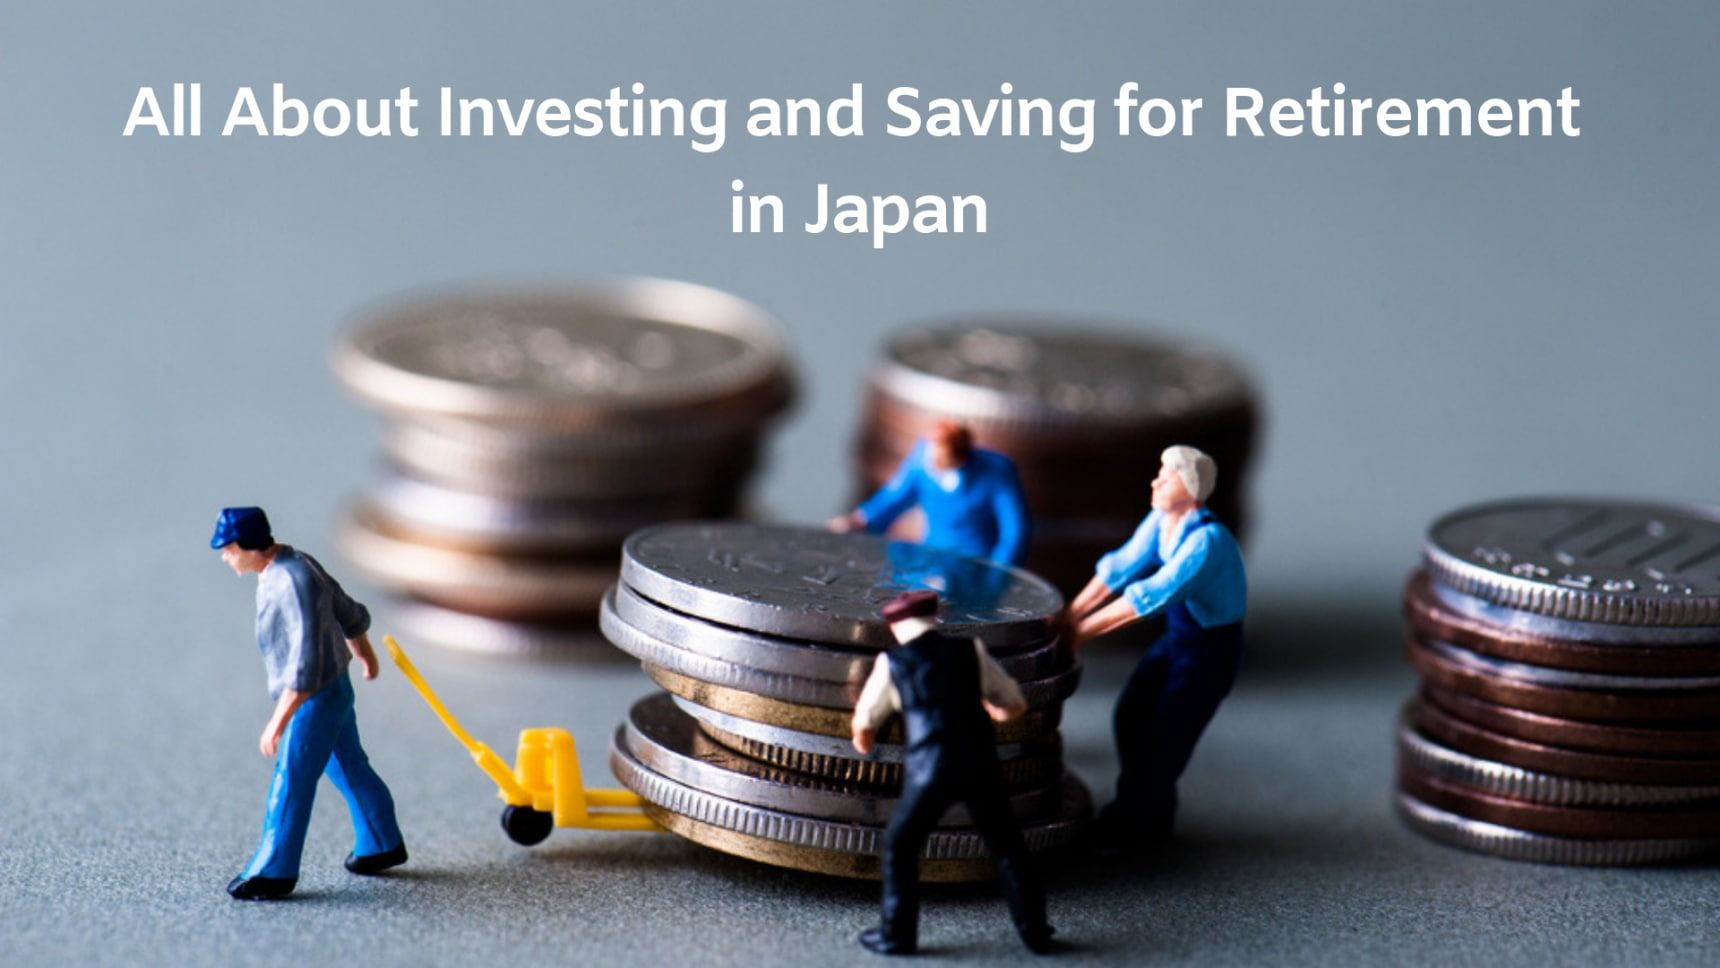 All About Investing for Retirement in Japan